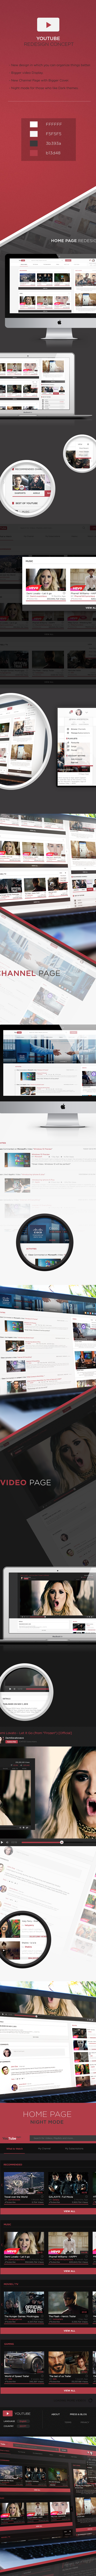 youtube redesign concept UI ux clean video social media flat videos sharing share google